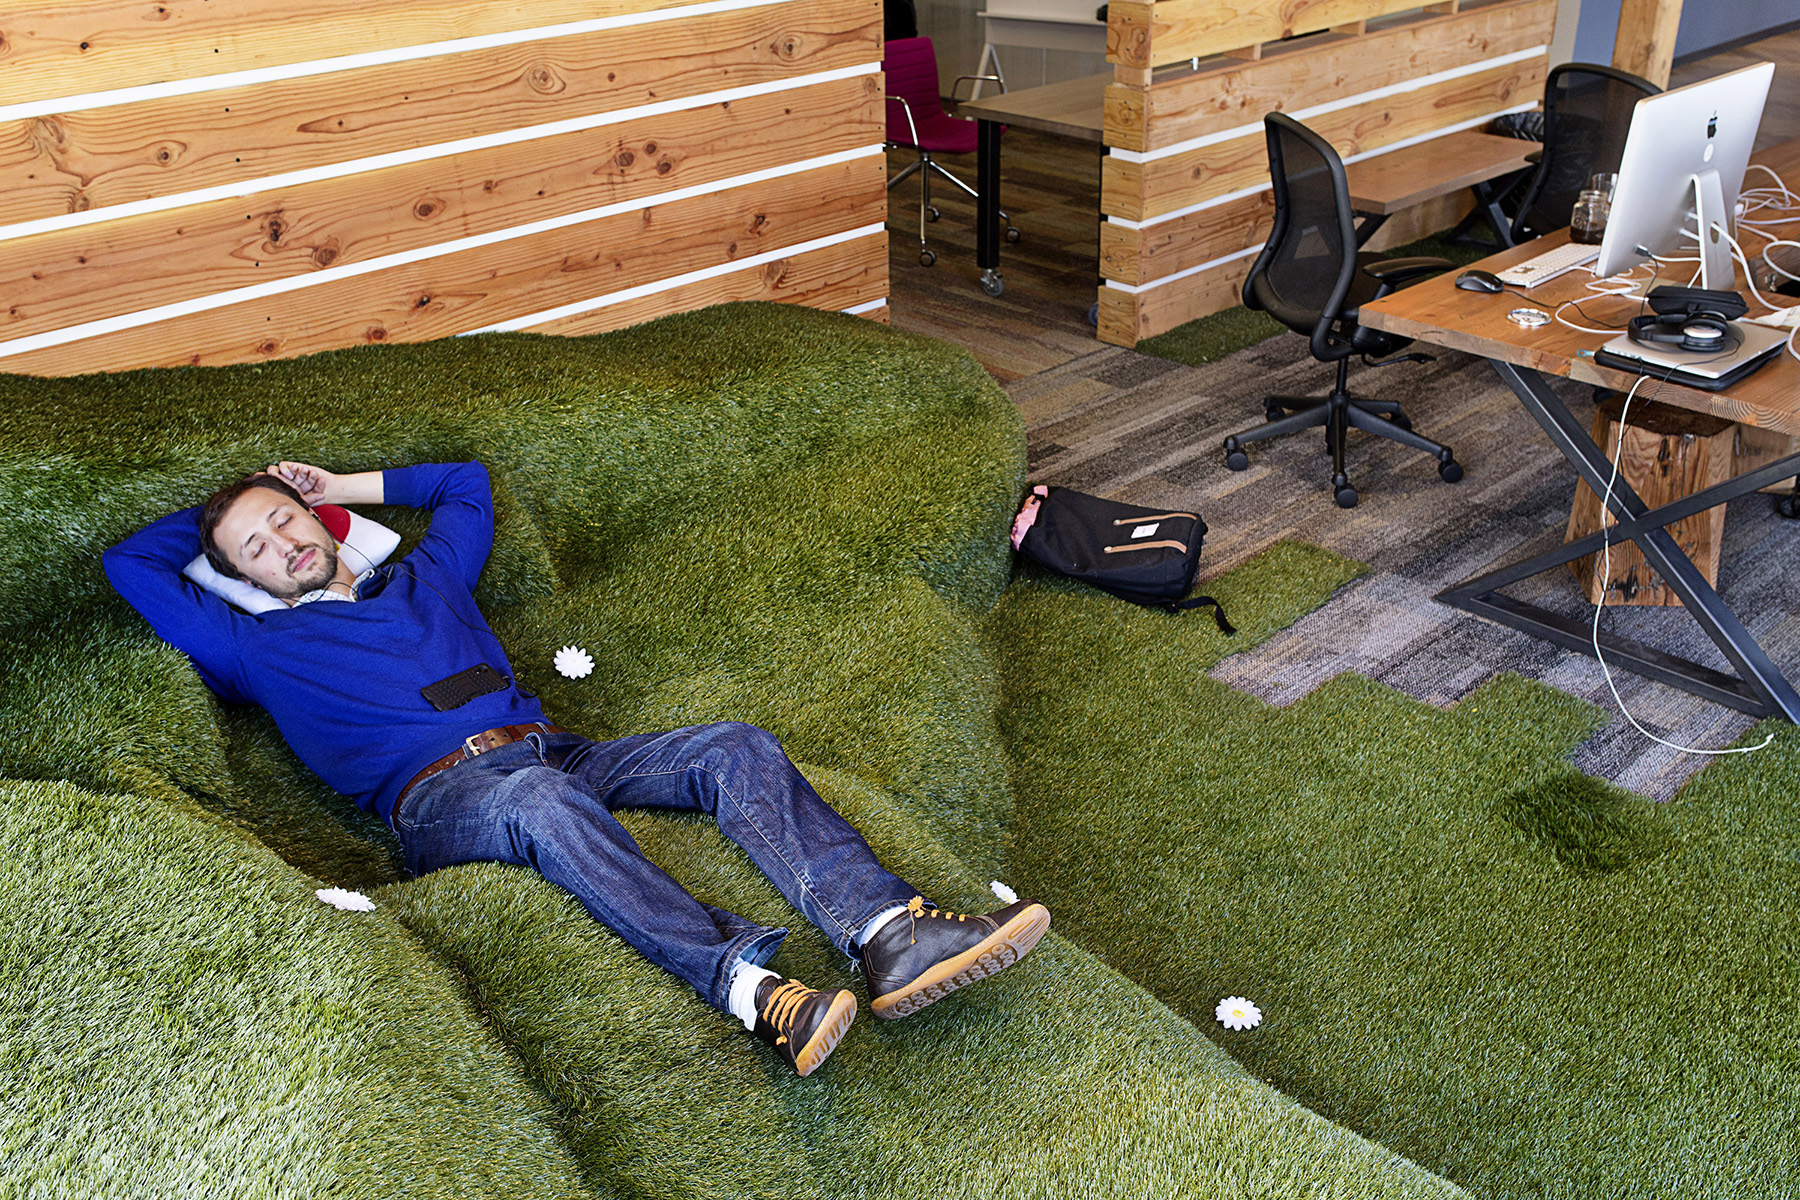 Lev Konstantinovski takes a nap on a break from the data science program he was attending at the co-working space Galvanize in San Francisco, Calif., in March 2015. Galvanize, a hybrid company that combines tech office space with a school, has several campuses around the country in addition to the one in San Francisco. The campus is themed around San Francisco parks, including this common area, which is built to resemble Dolores Park.